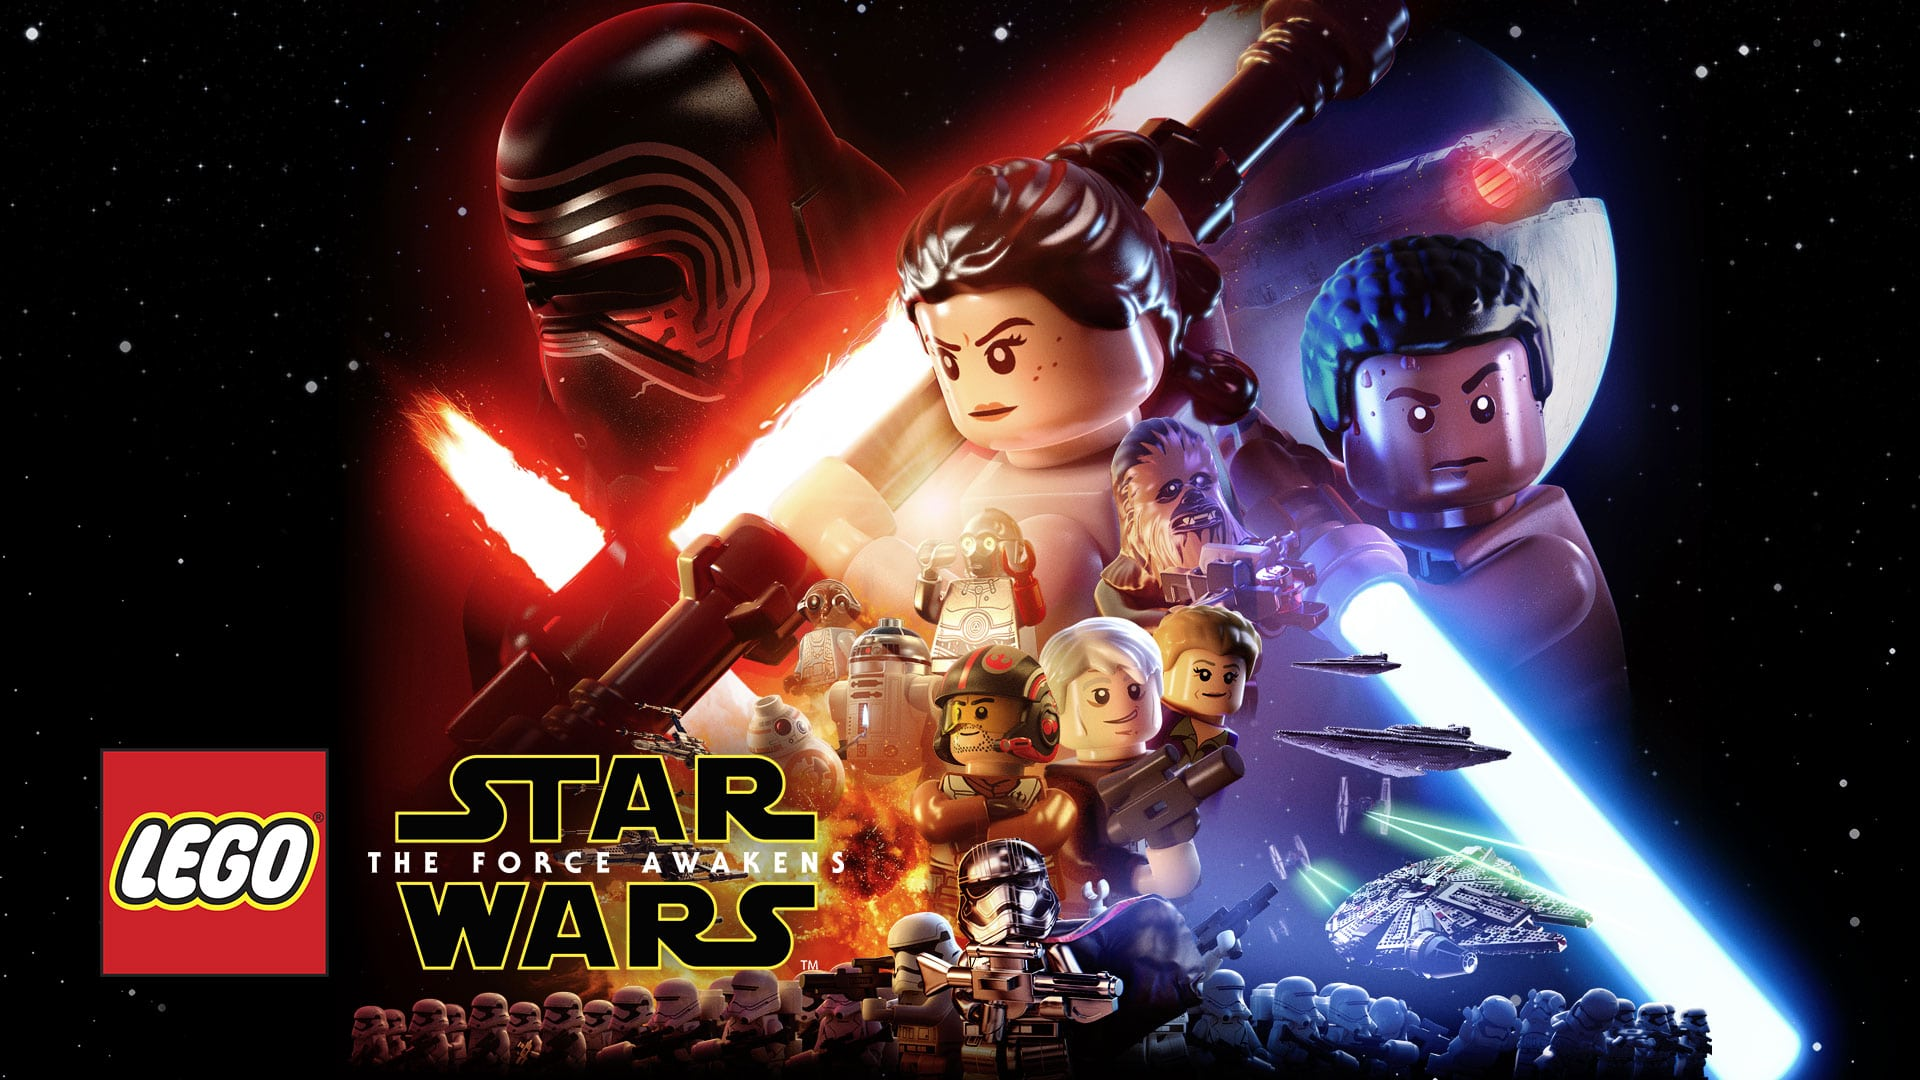 Star Wars Wallpapers Lego Star Wars The Force Awakens Game